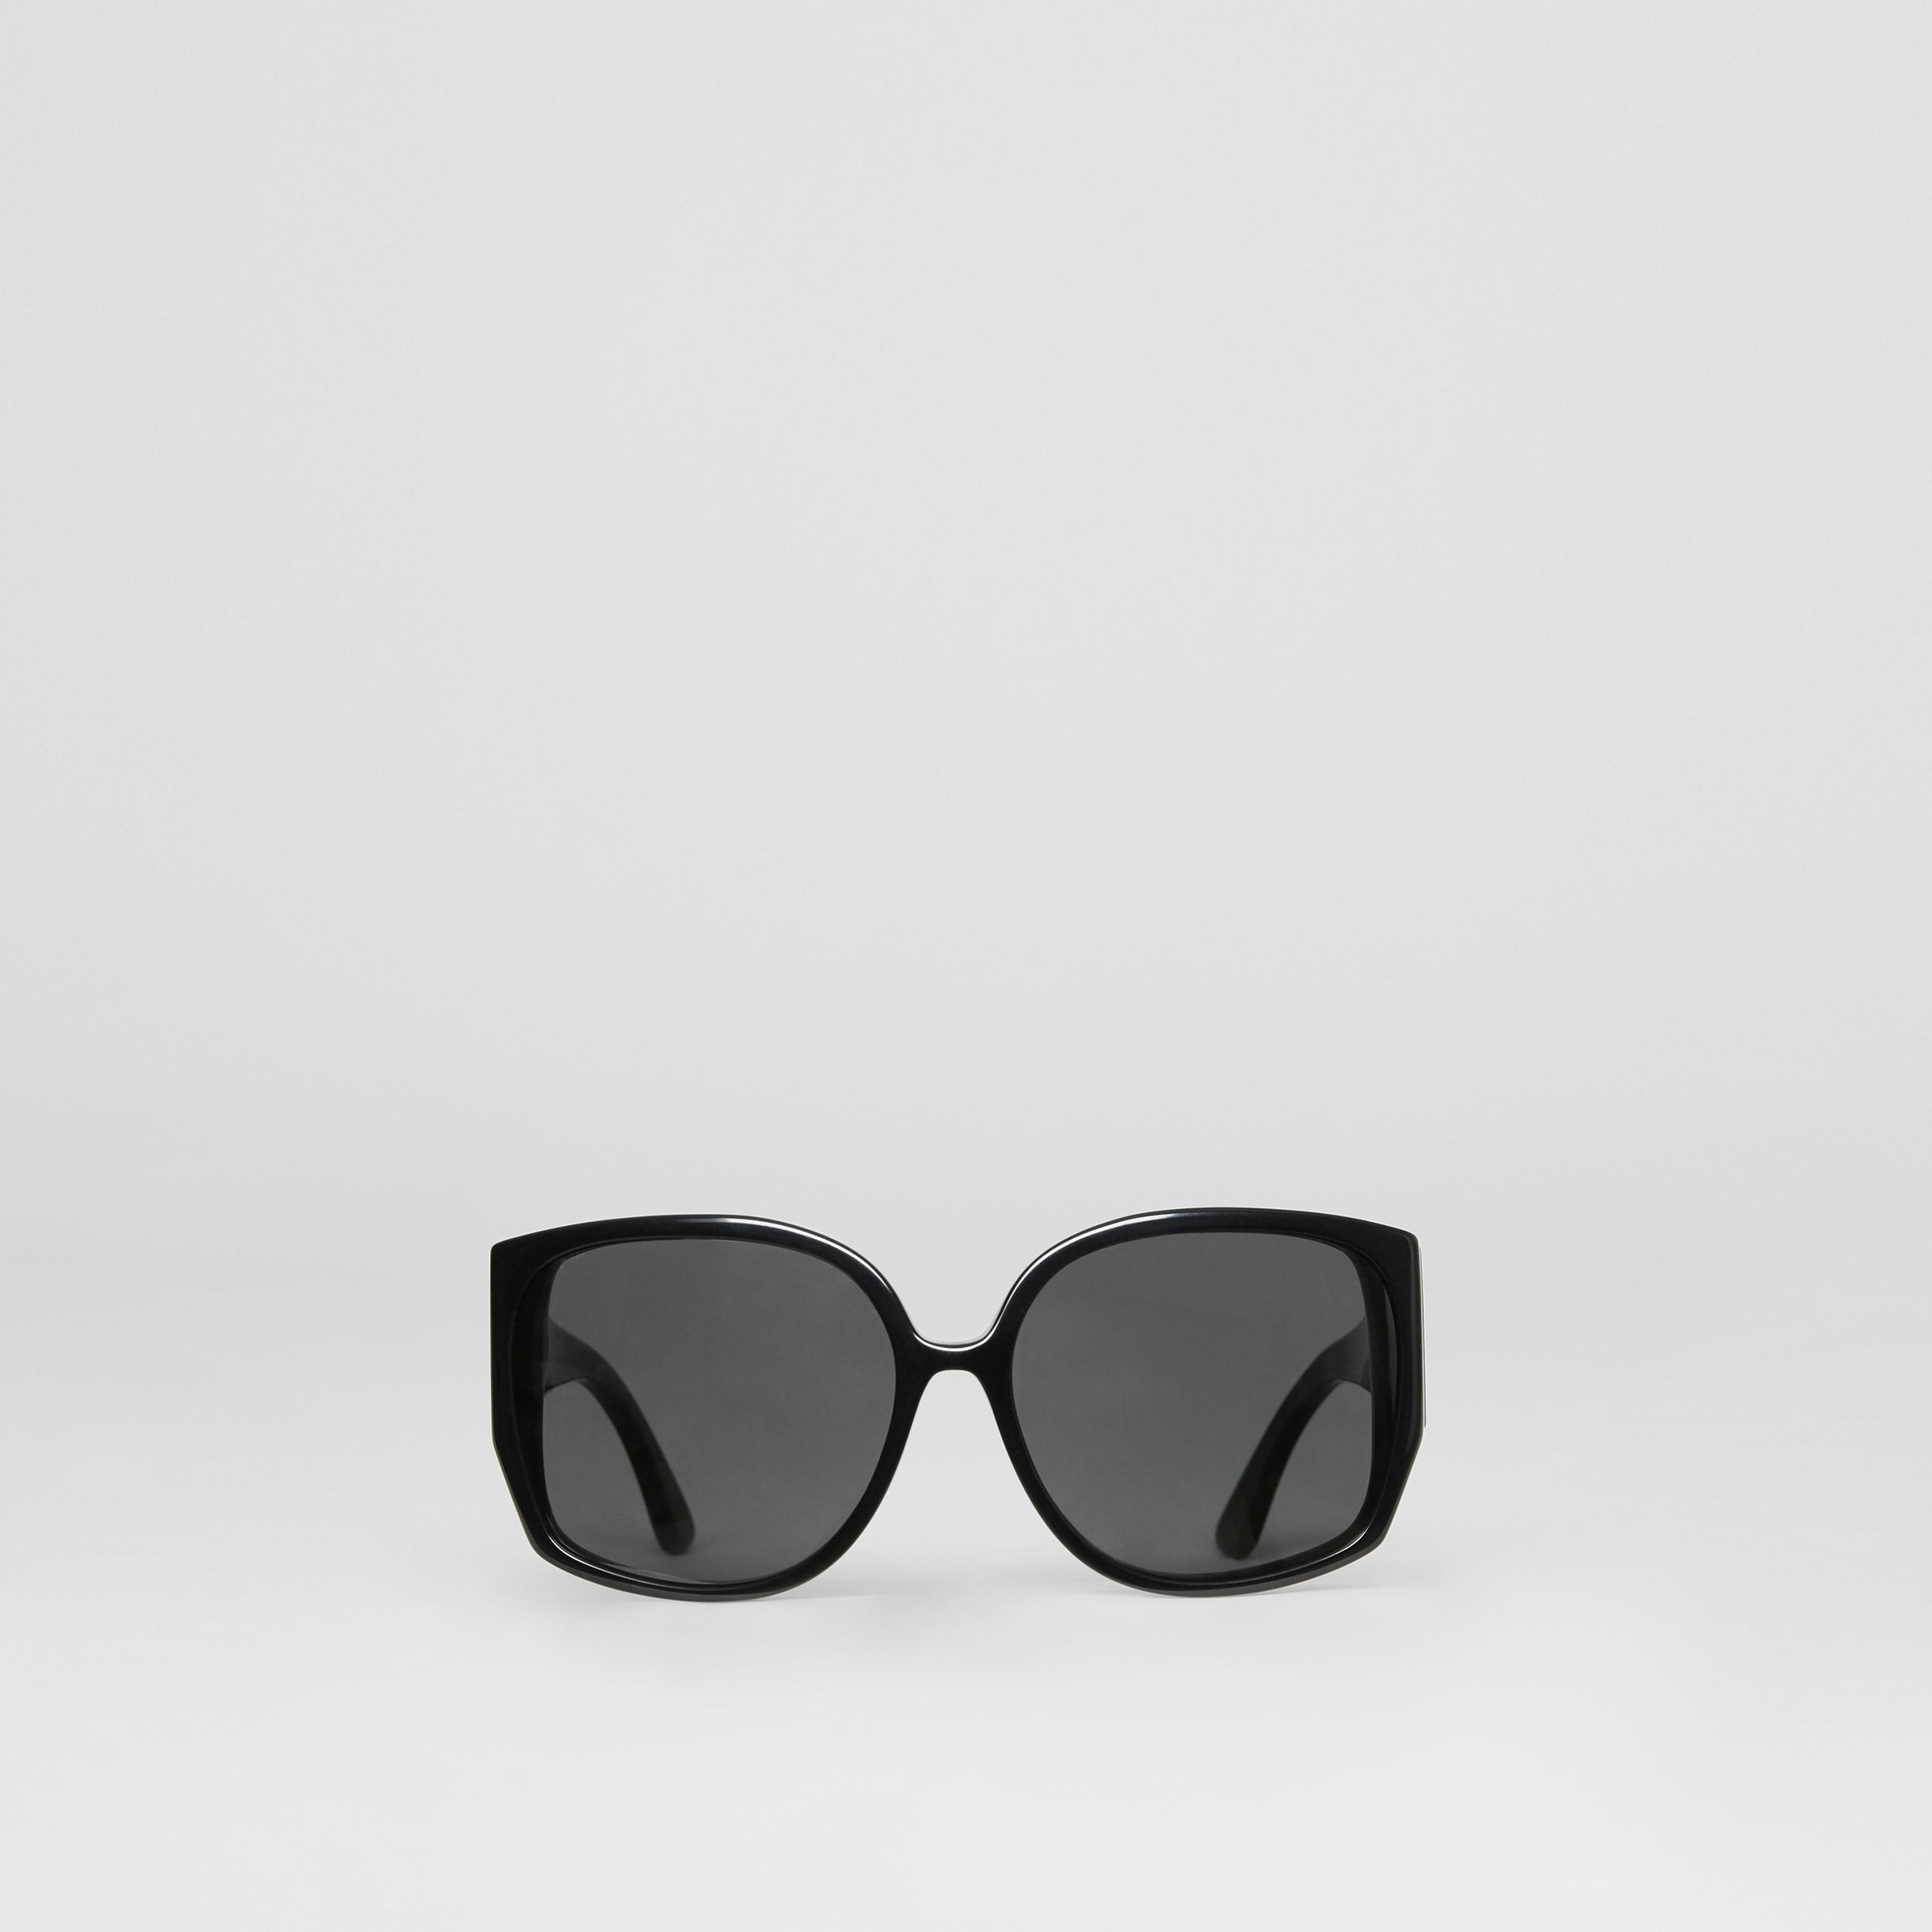 Oversized Butterfly Frame Sunglasses in Black - Women | Burberry Canada - 1